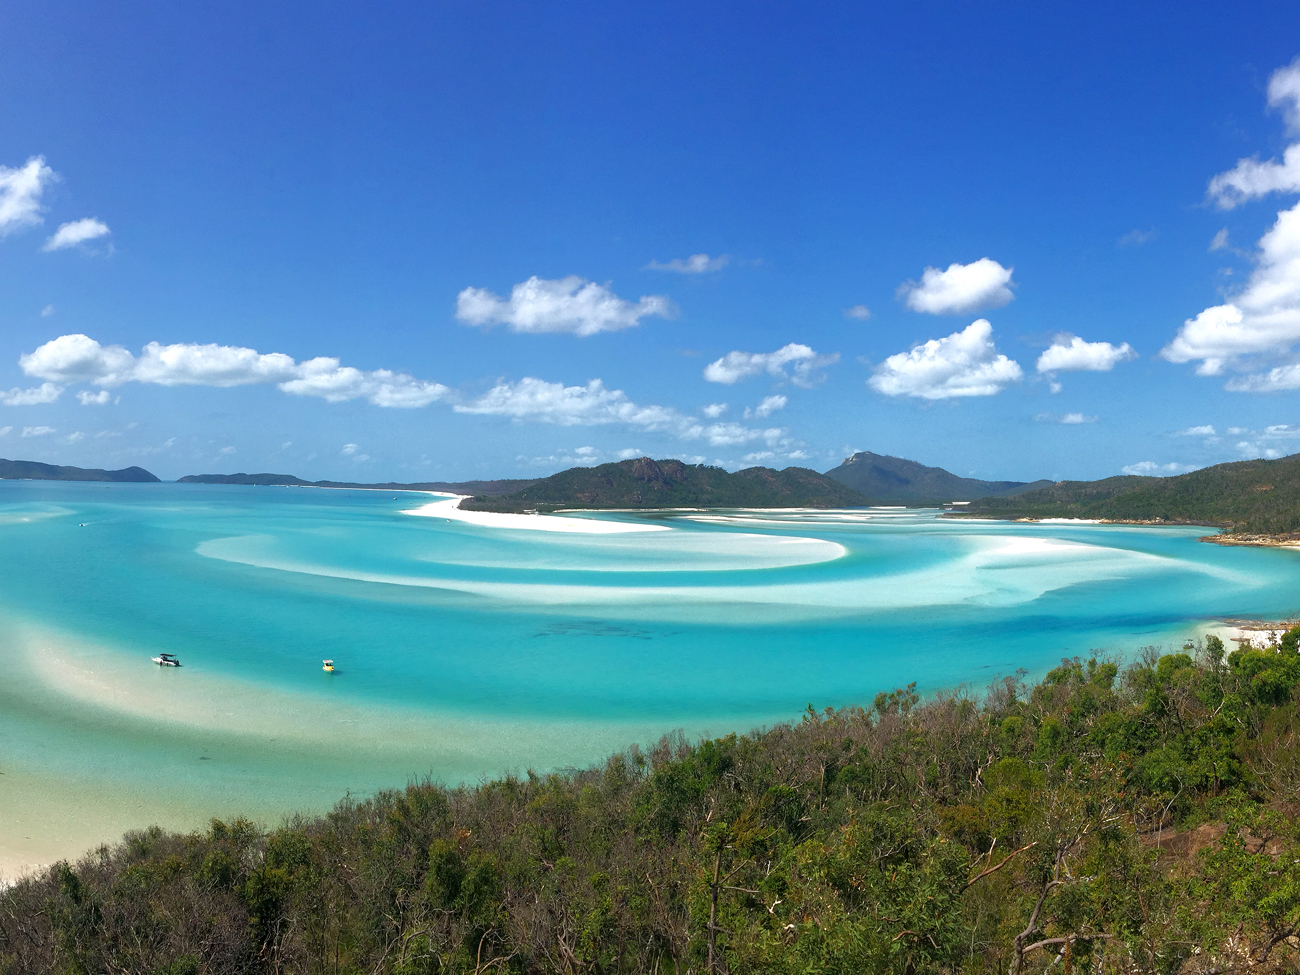 Guide to the Whitsunday Islands and Great Barrier Reef